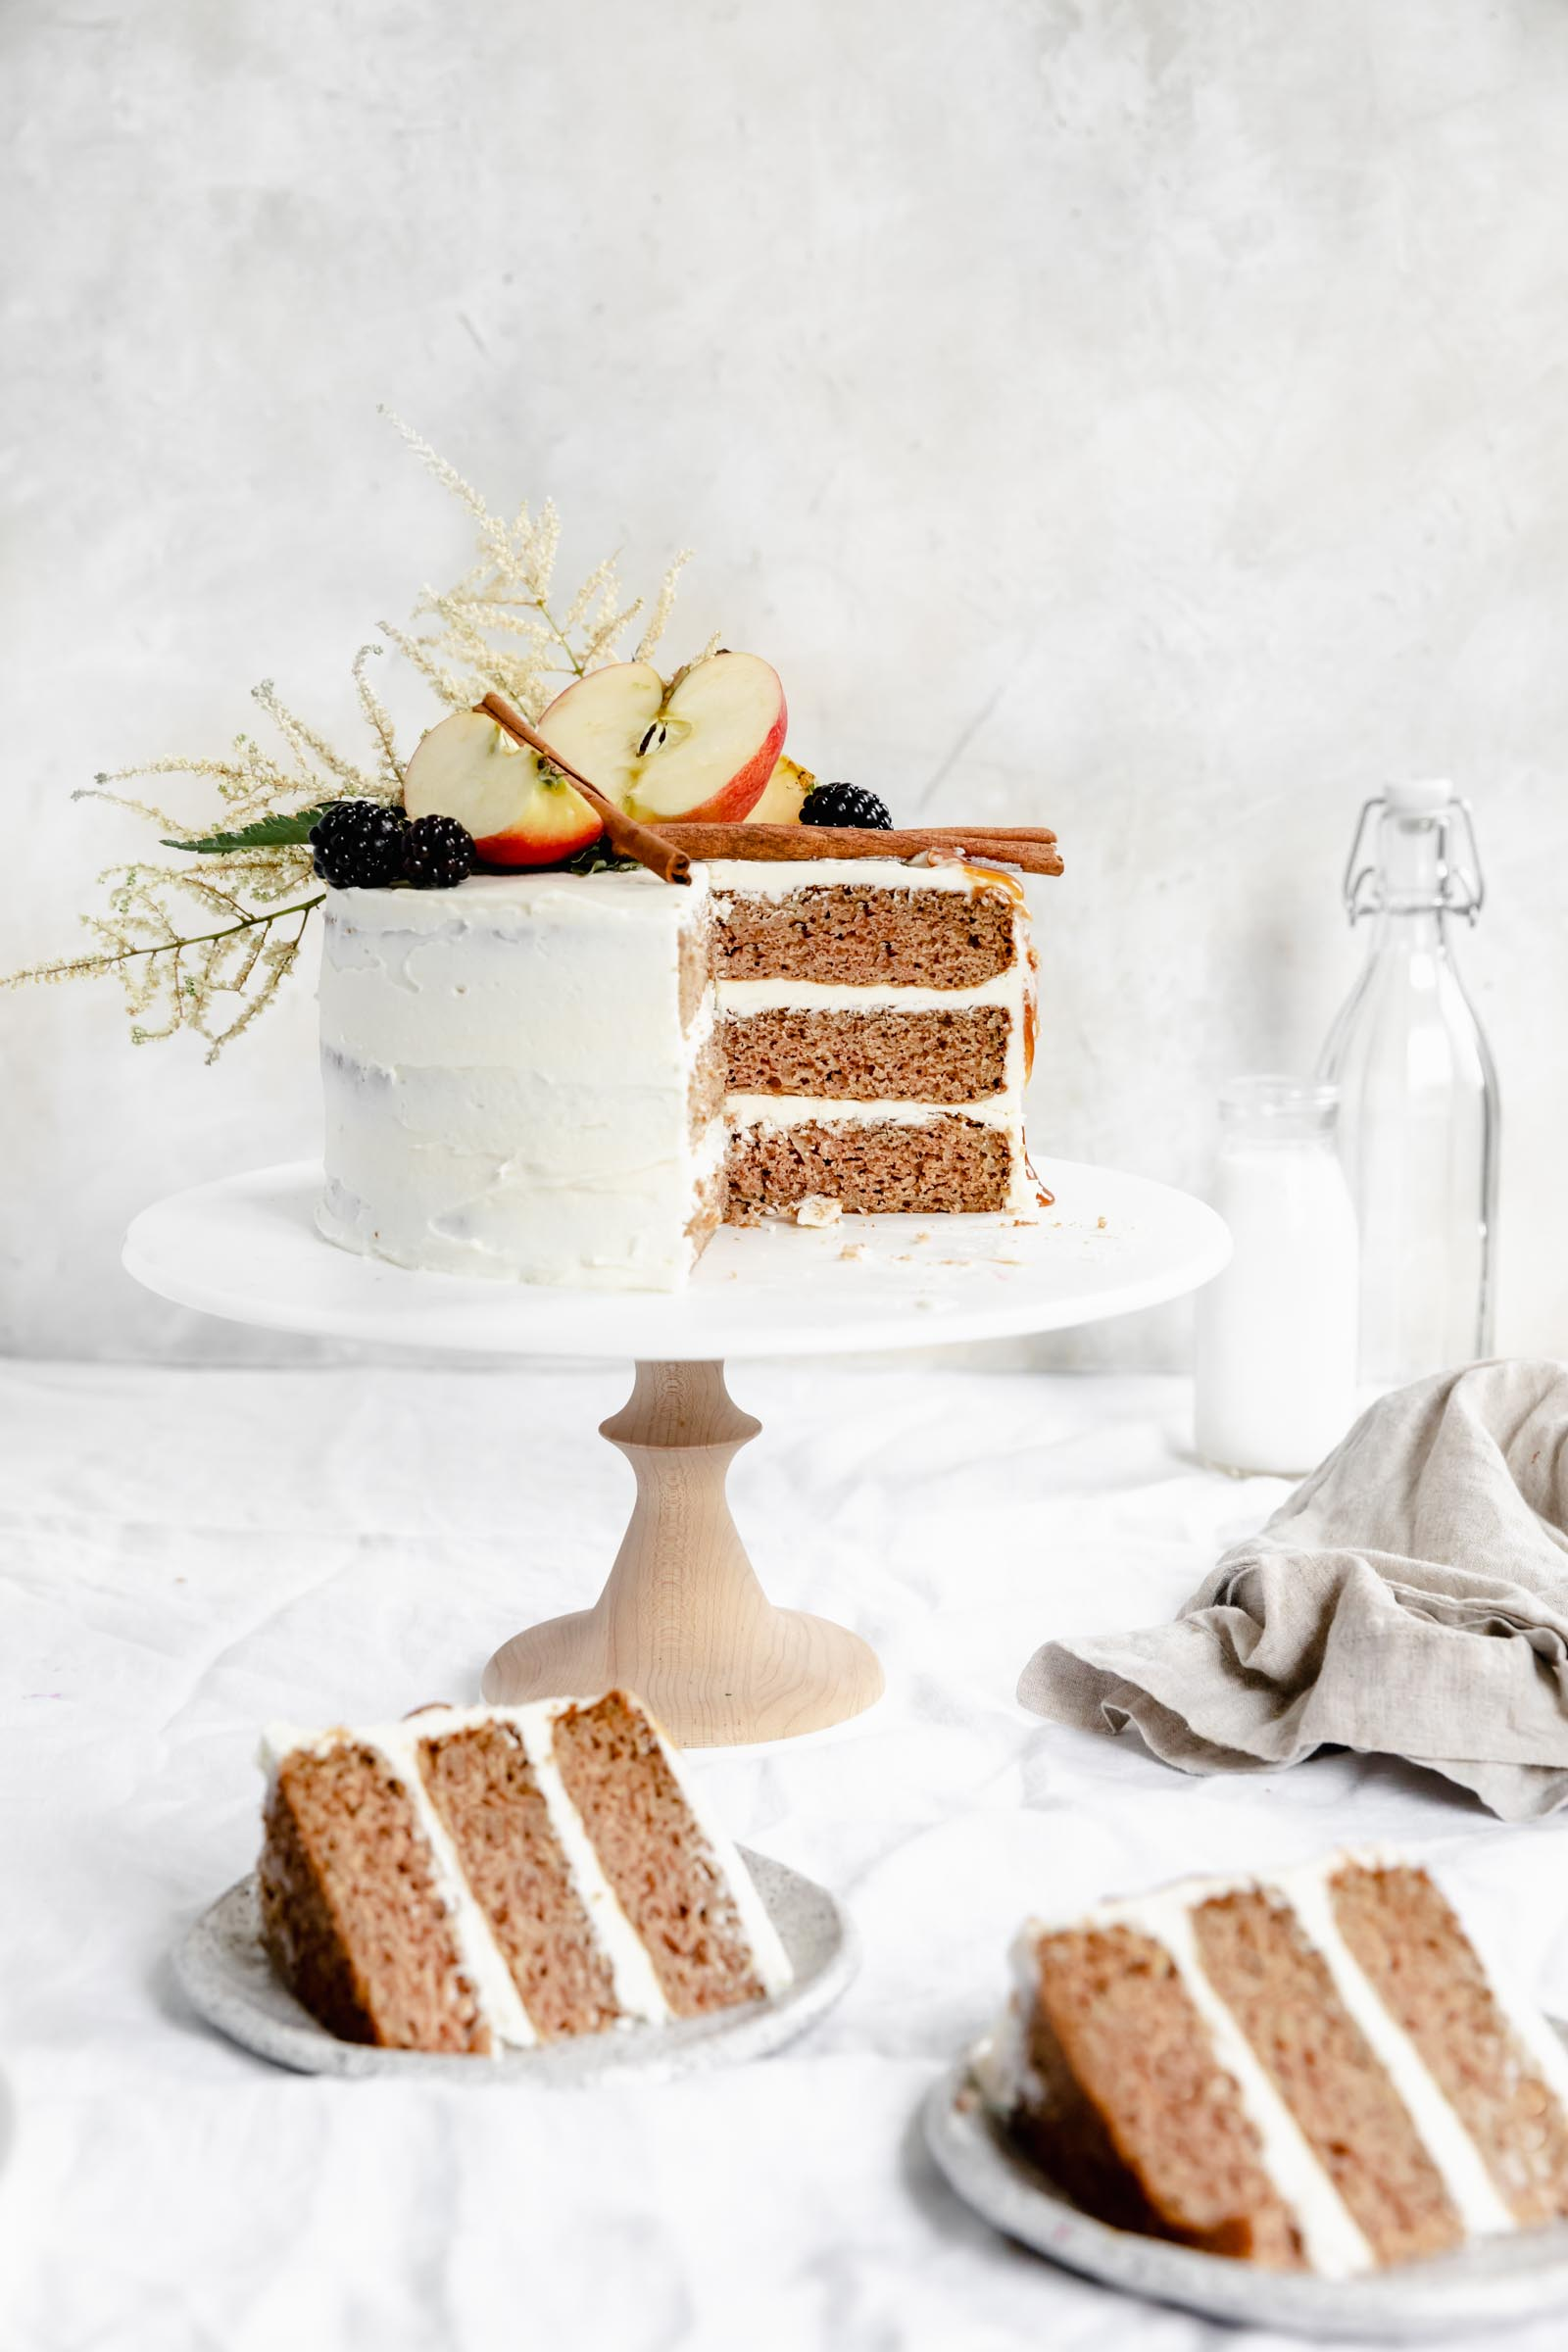 caramel apple cake with two slices on plates